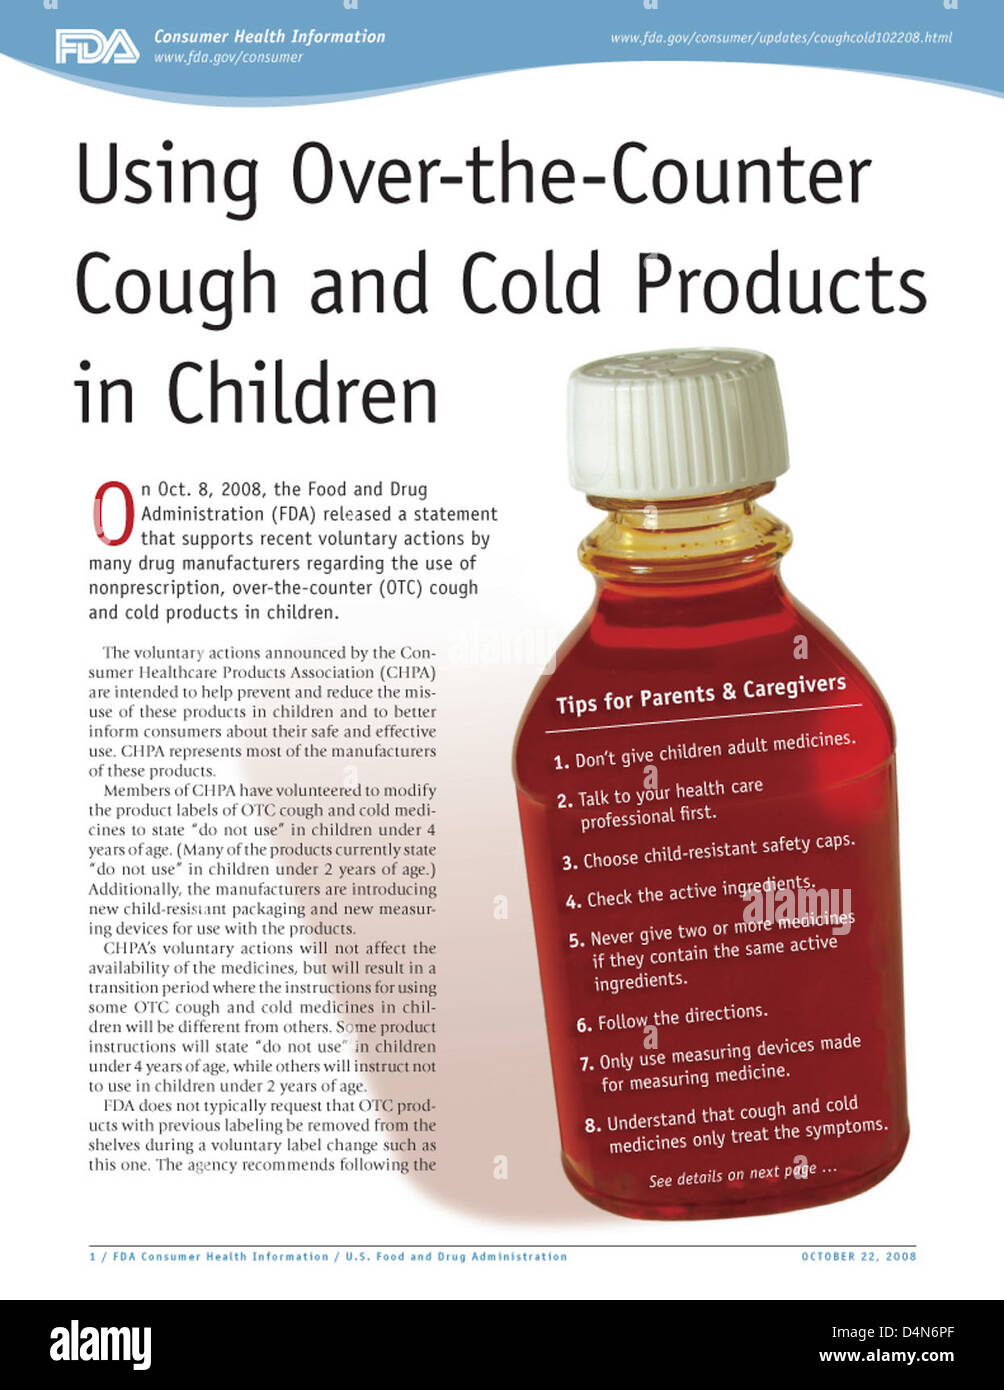 Using Over-the-Counter Cough and Cold Products in Children - Stock Image